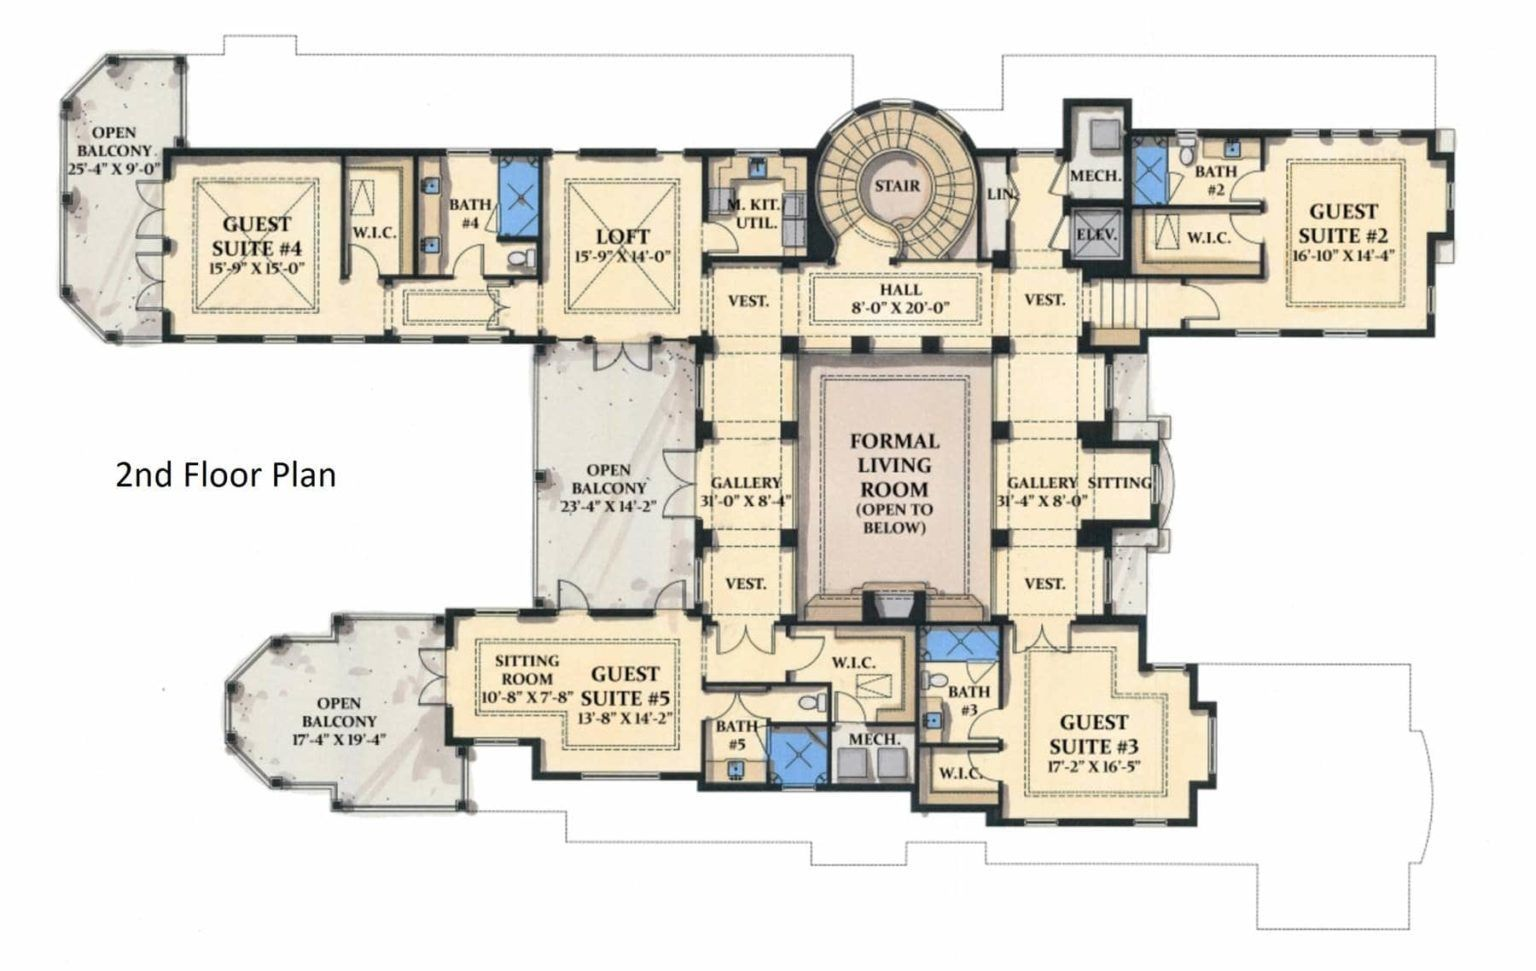 5 Bedroom Two Story Grand Royale Tuscan Style Home Floor Plan In 2020 Mediterranean Style House Plans Tuscan Style Homes House Floor Plans